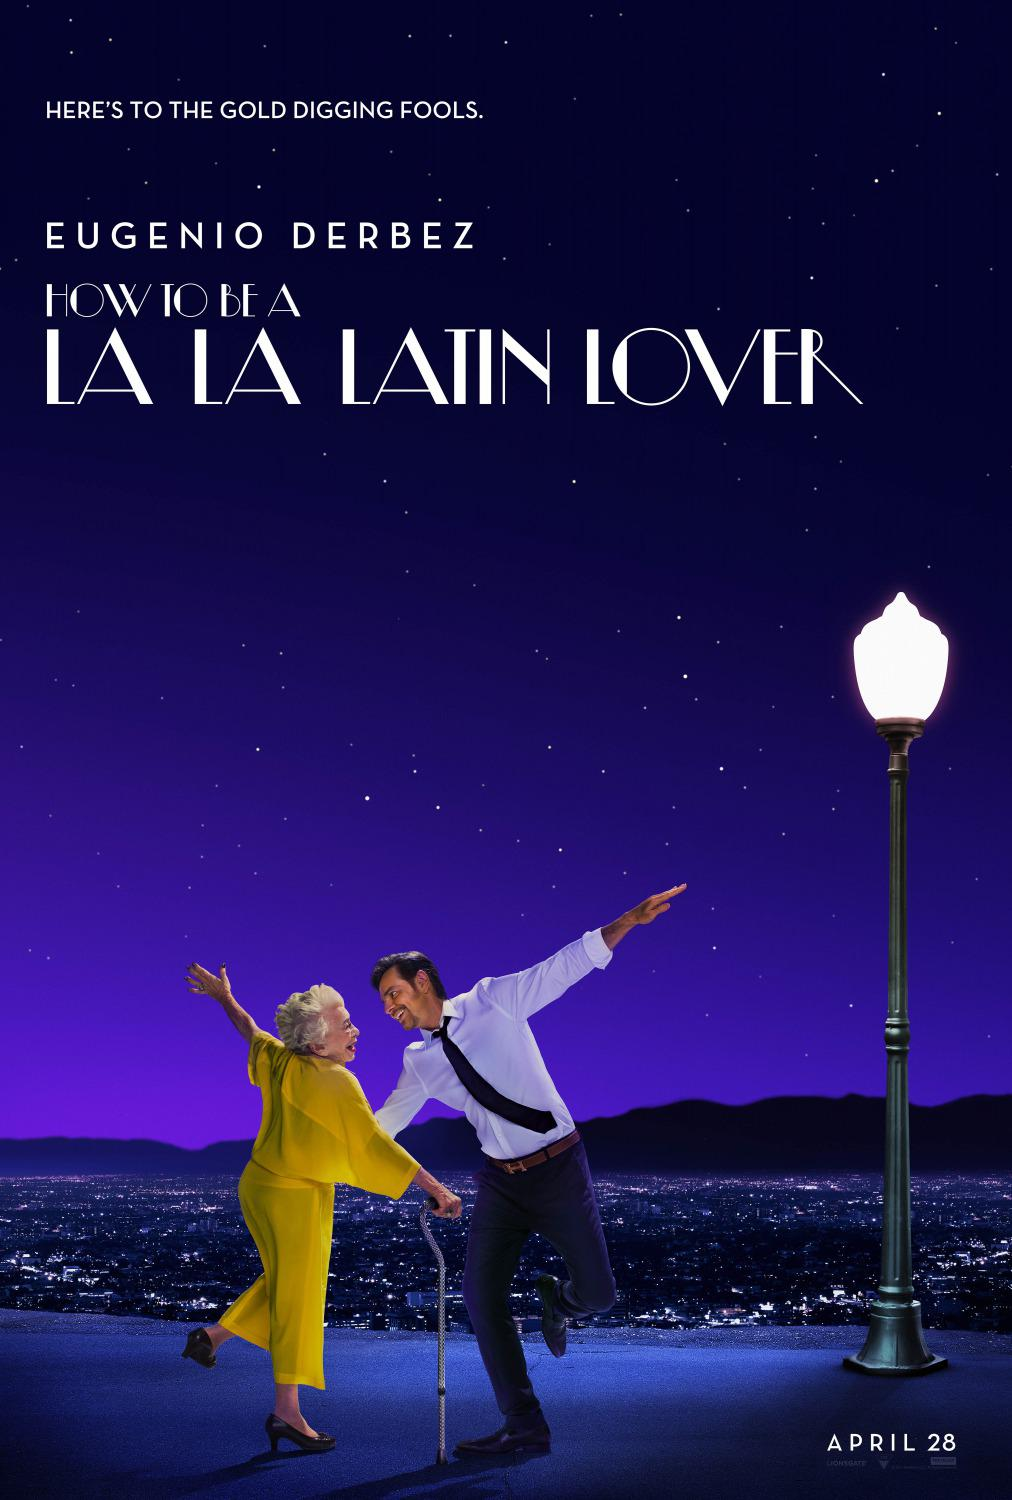 How to be a Latin Lover - Come diventare un Amante Latino - Cómo ser un Latin Lover  - Eugenio Derbez - poster LaLaLand